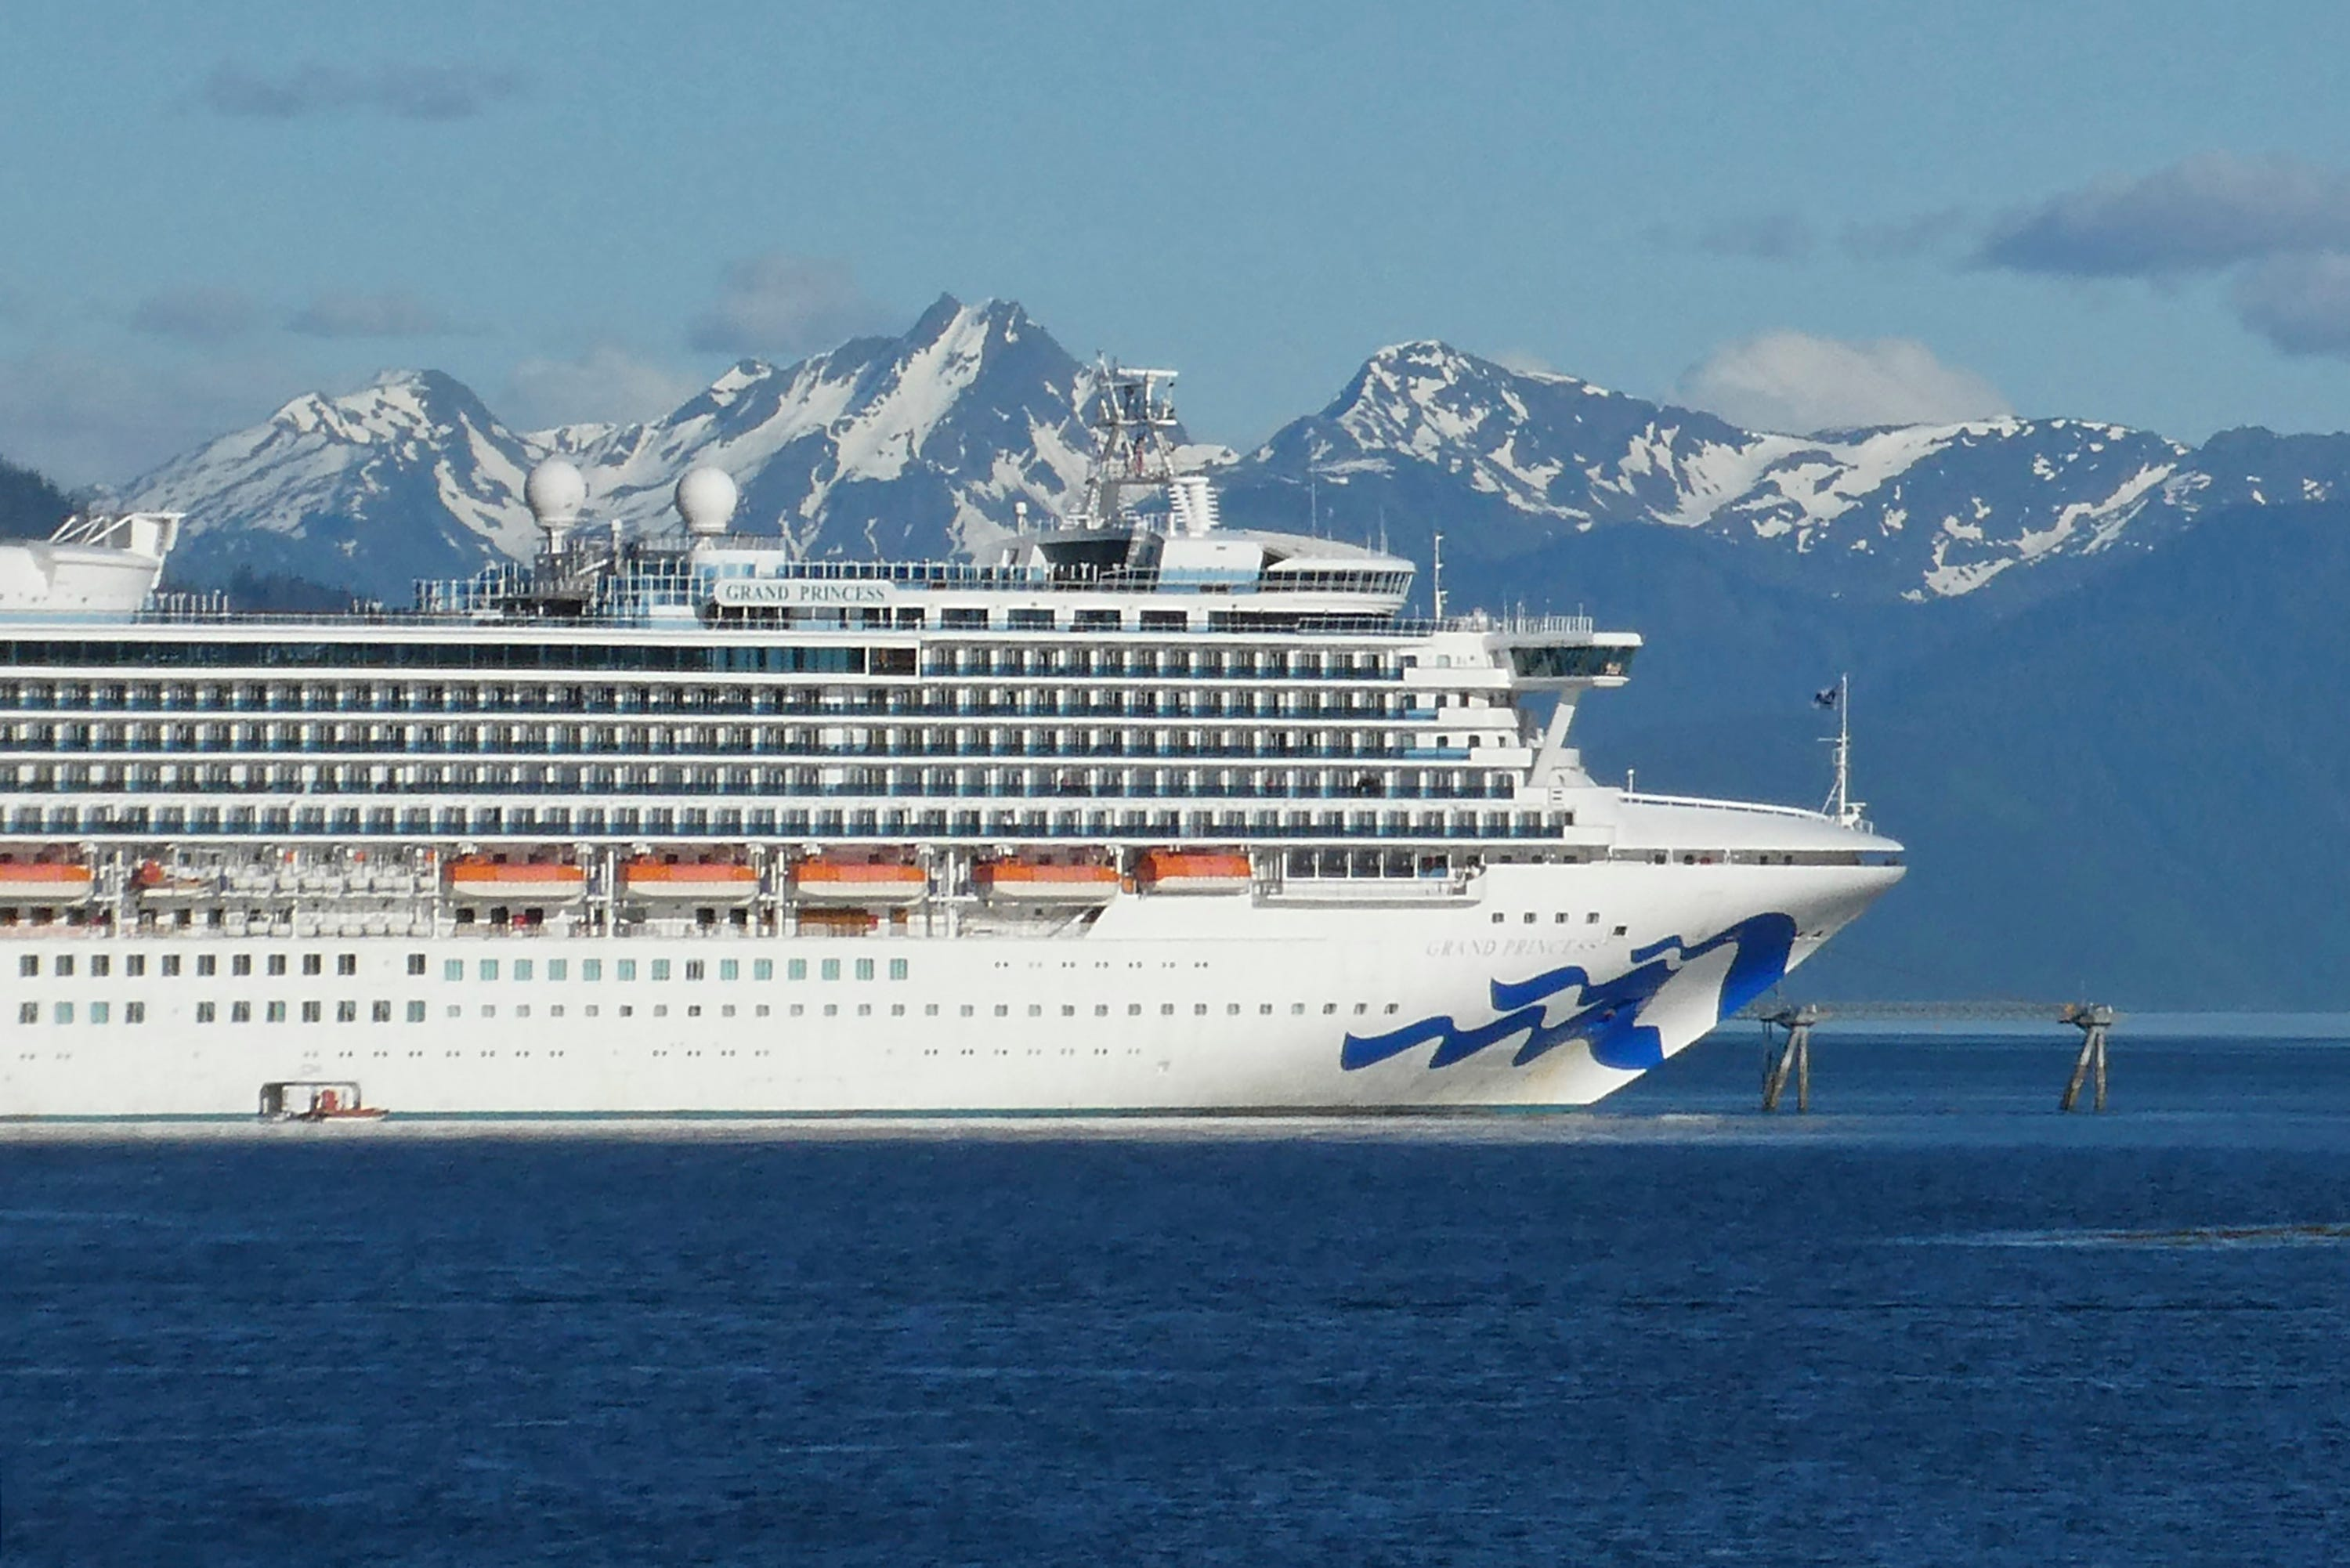 Congress urges Canada to reevaluate banning cruises until 2022